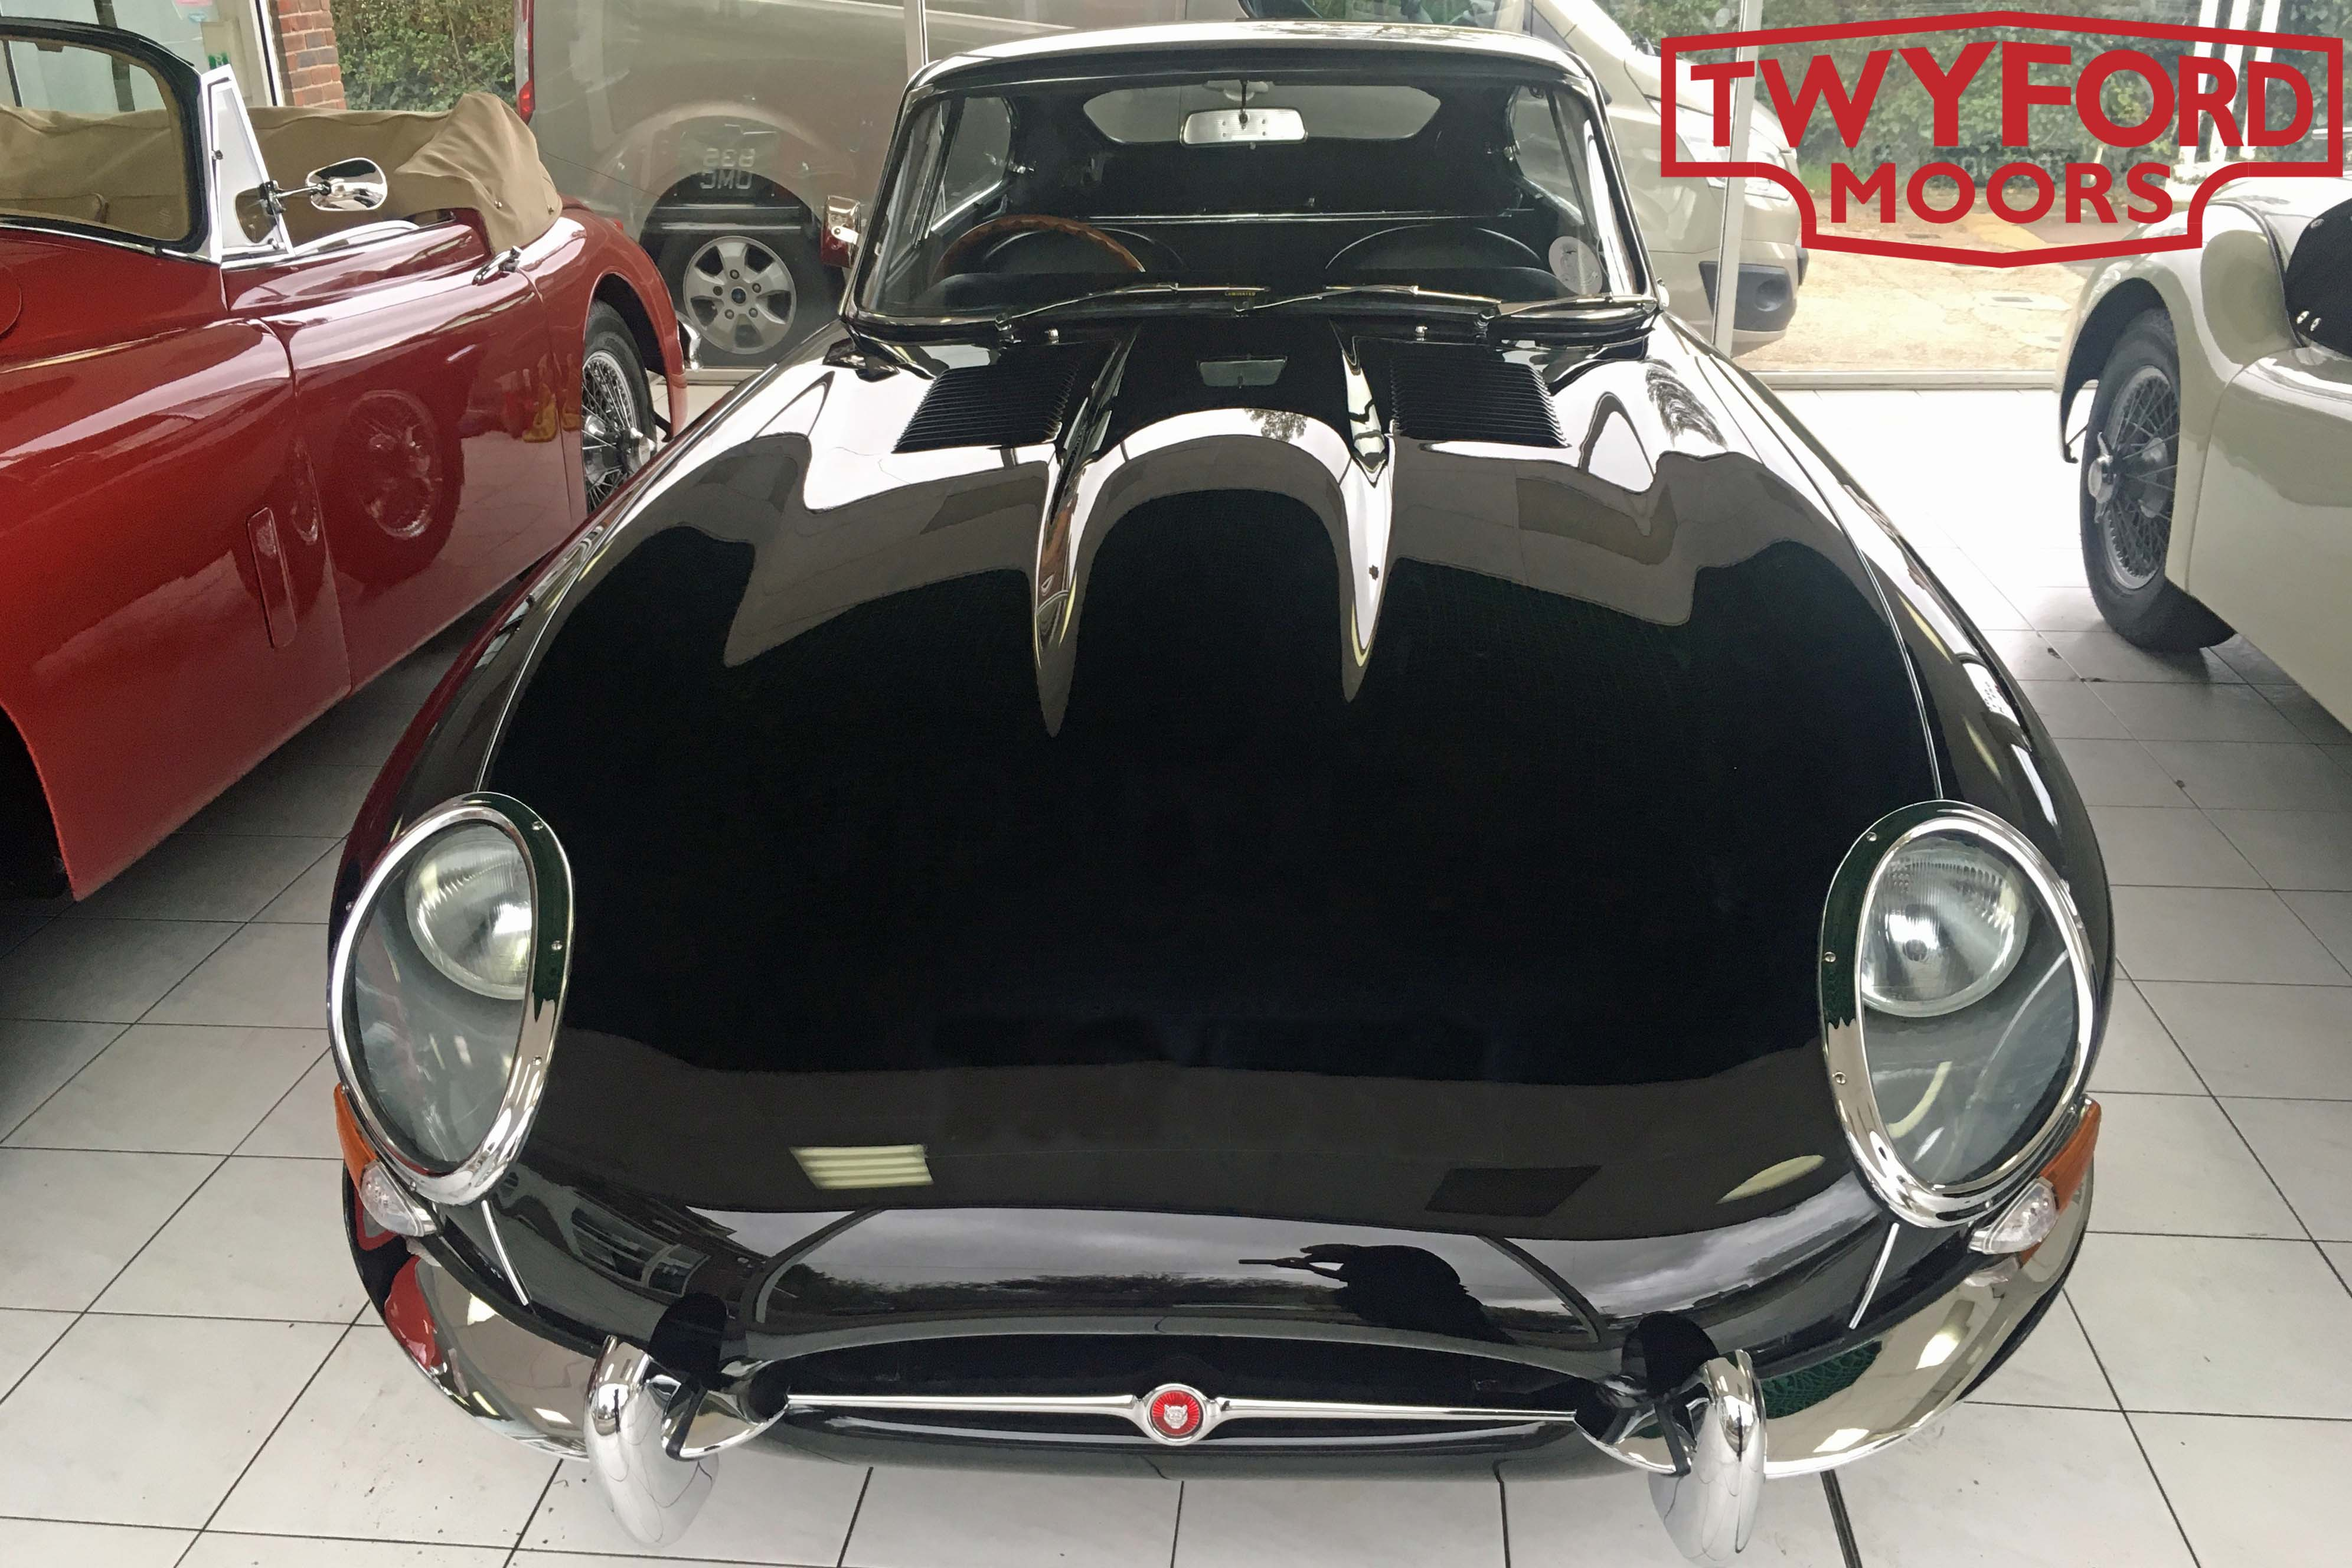 Jaguar E-Type windscreen wiper adjustment